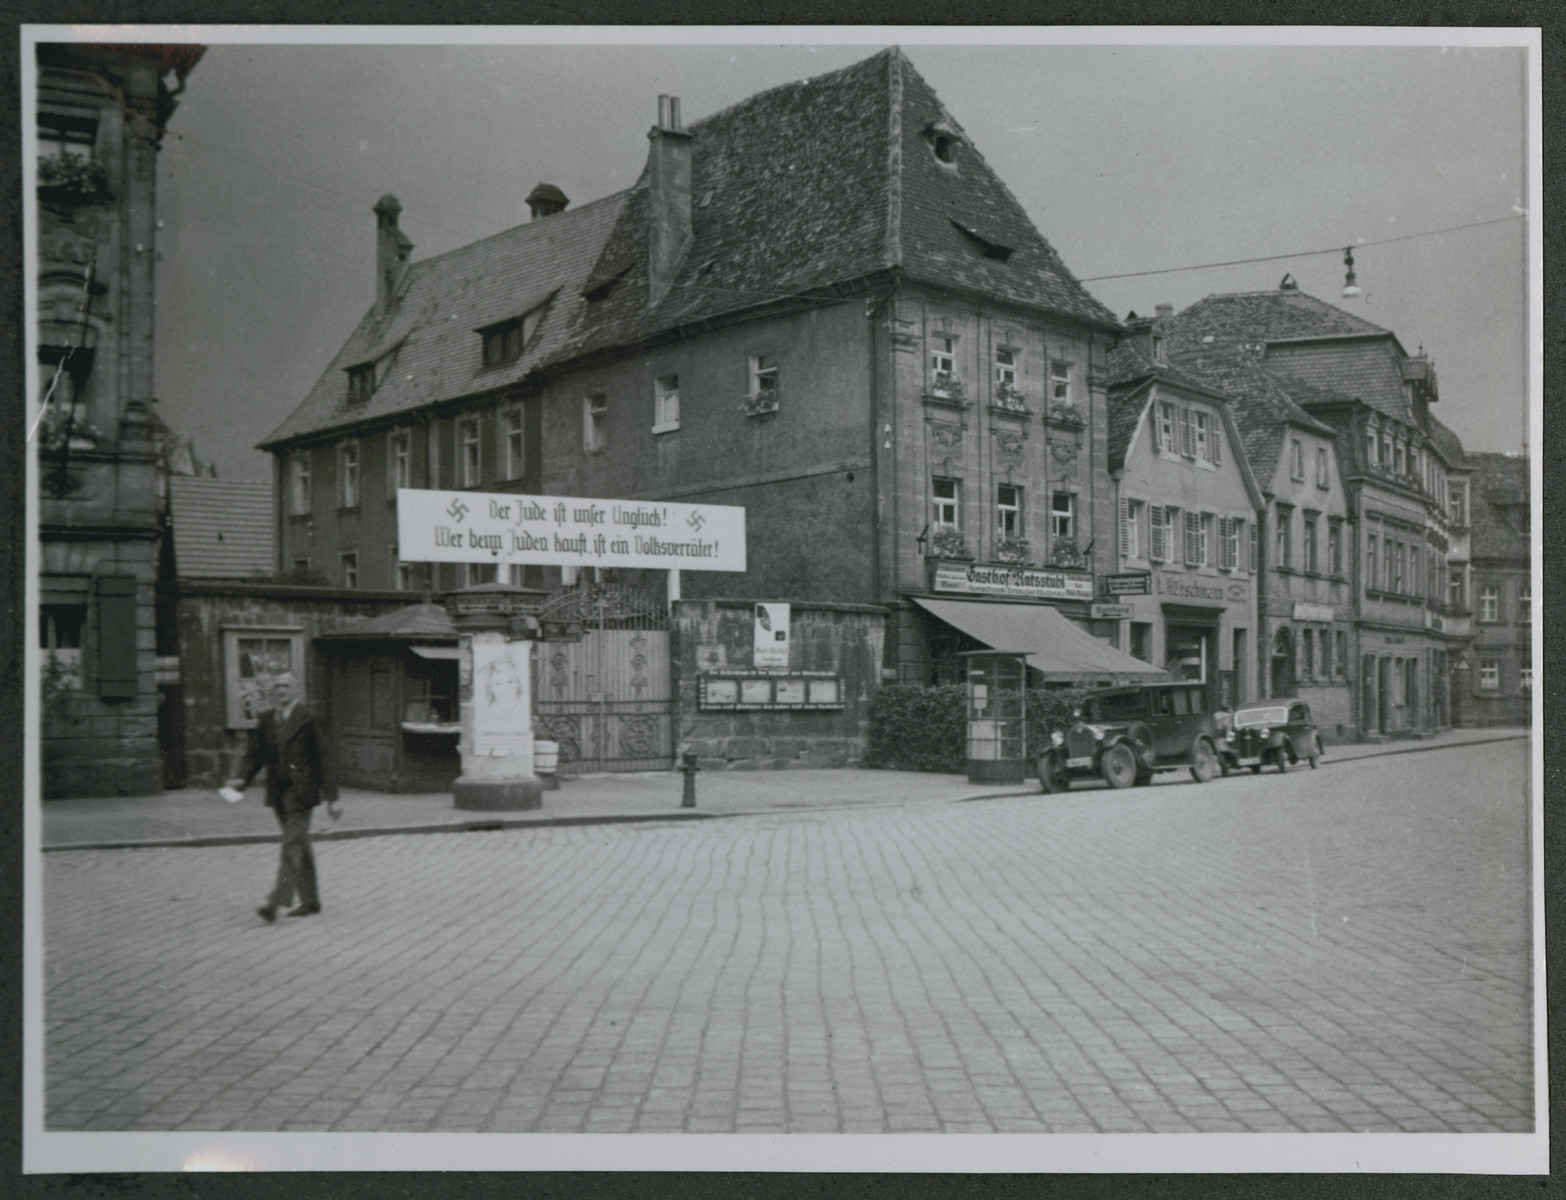 "One photograph from an album of antisemitic signs in Germany.  The sign (in German) reads, ""Der Jude ist unser Unglueck! Wer beim Juden kauft ist ein Volksverrater!""  [The Jews are our misfortune!  He who buys from Jews is a traitor to the nation!]"